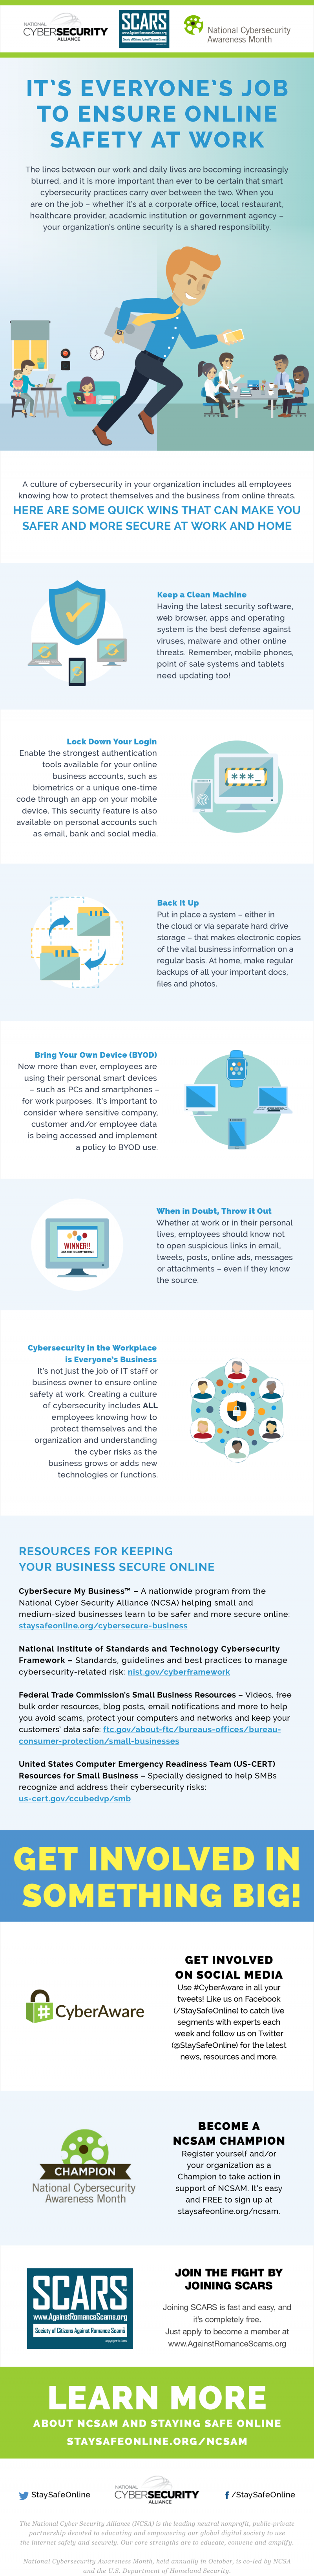 IT'S EVERYONE'S JOB TO ENSURE ONLINE SAFETY AT WORK